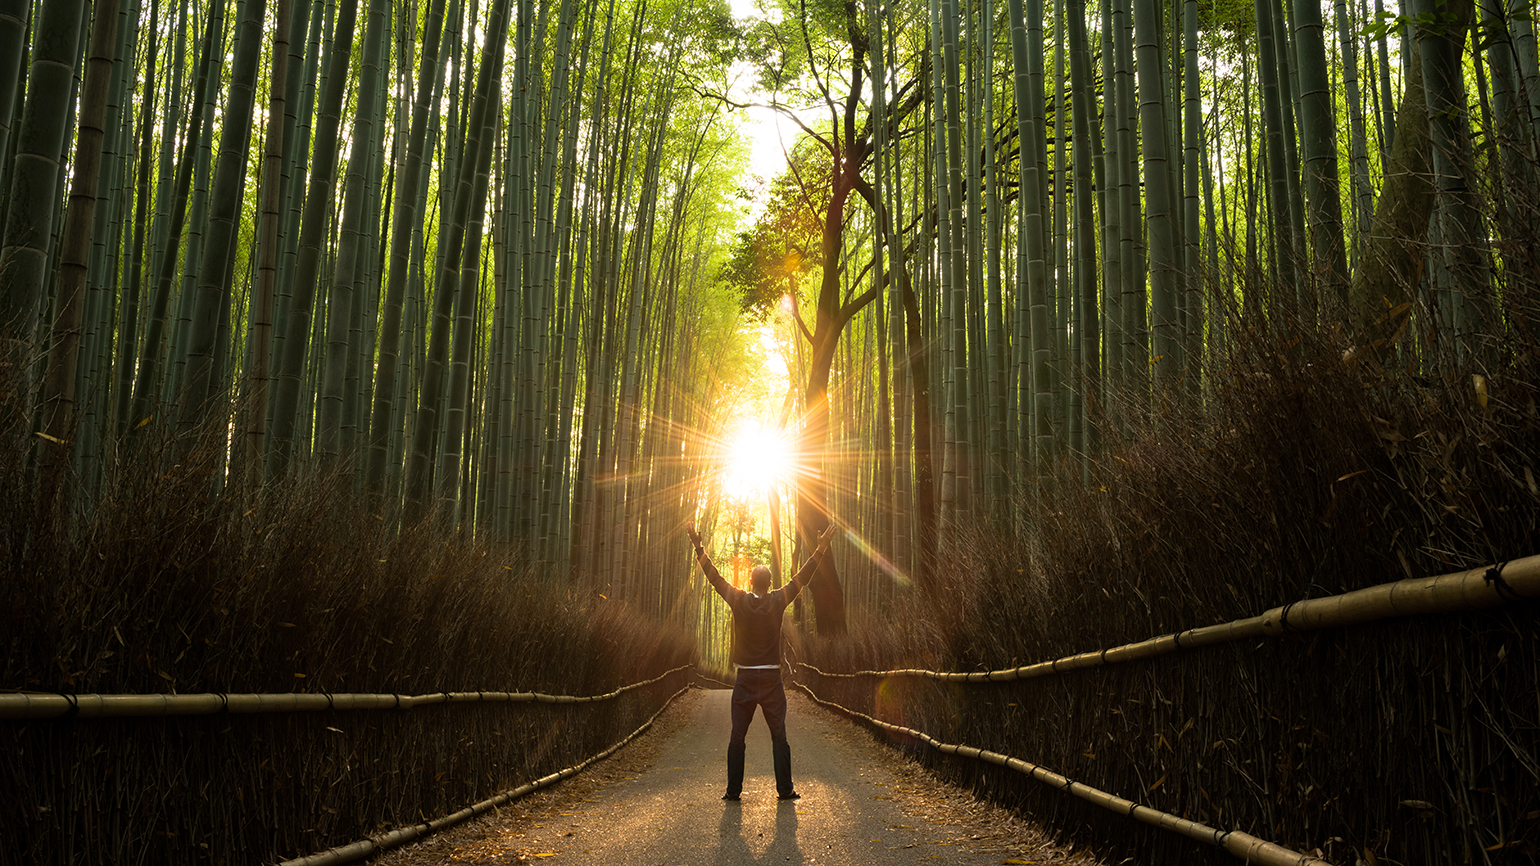 A man stands, arms raised, on a path through a bamboo forest at sunrise